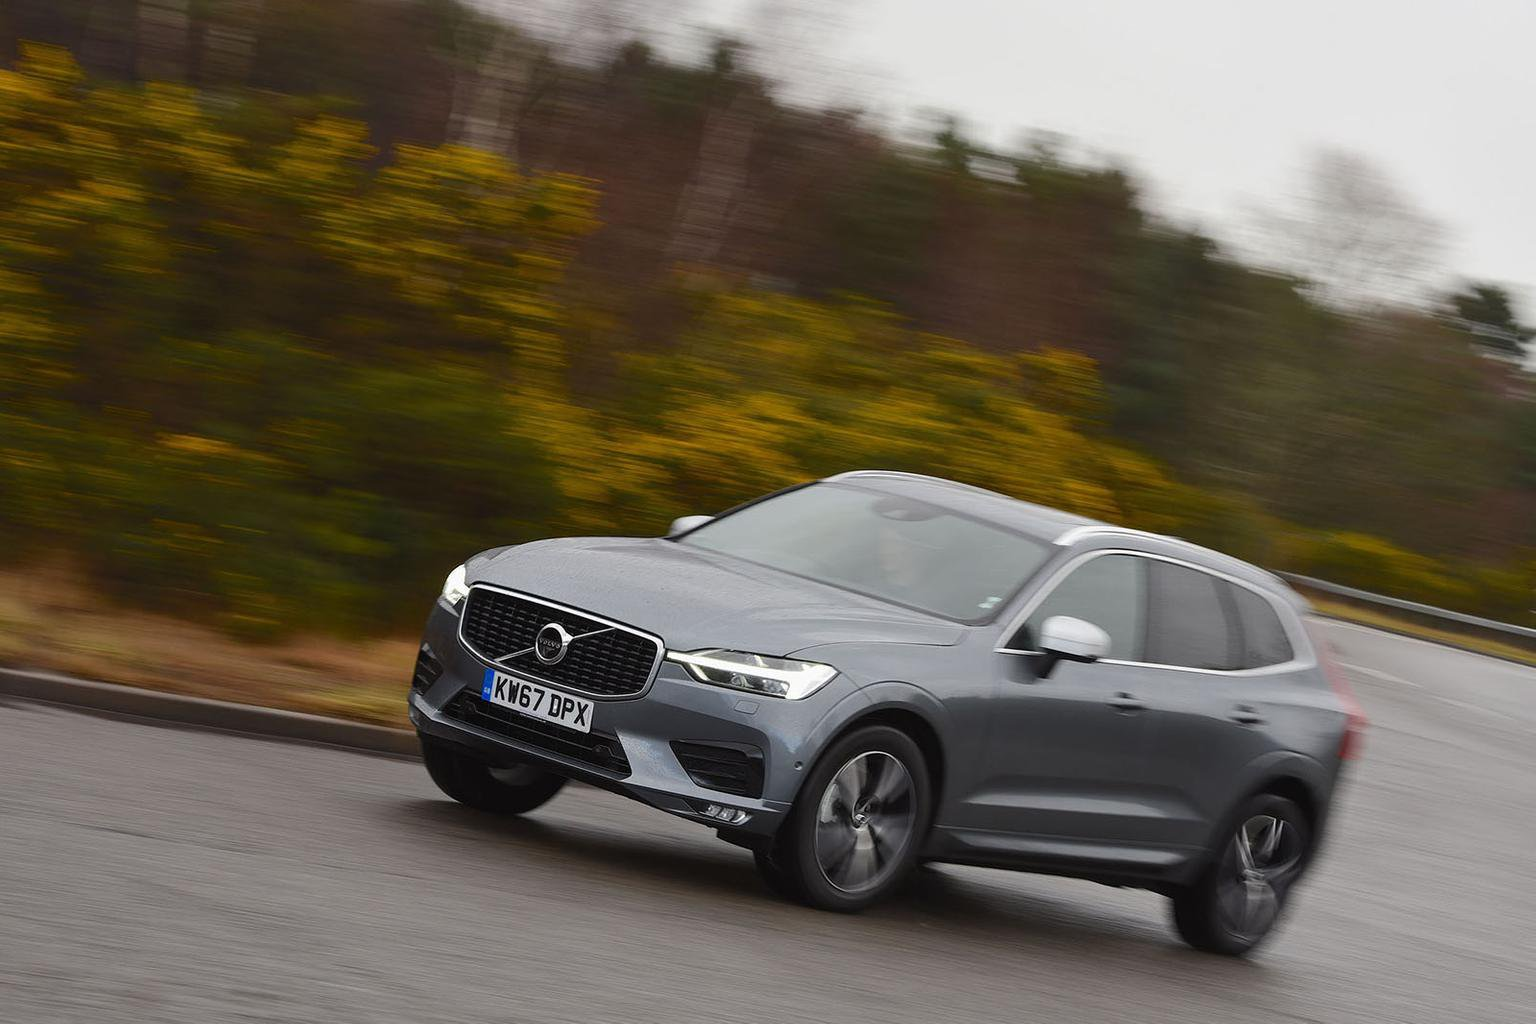 2018 Volvo XC60 D4 Manual review - verdict